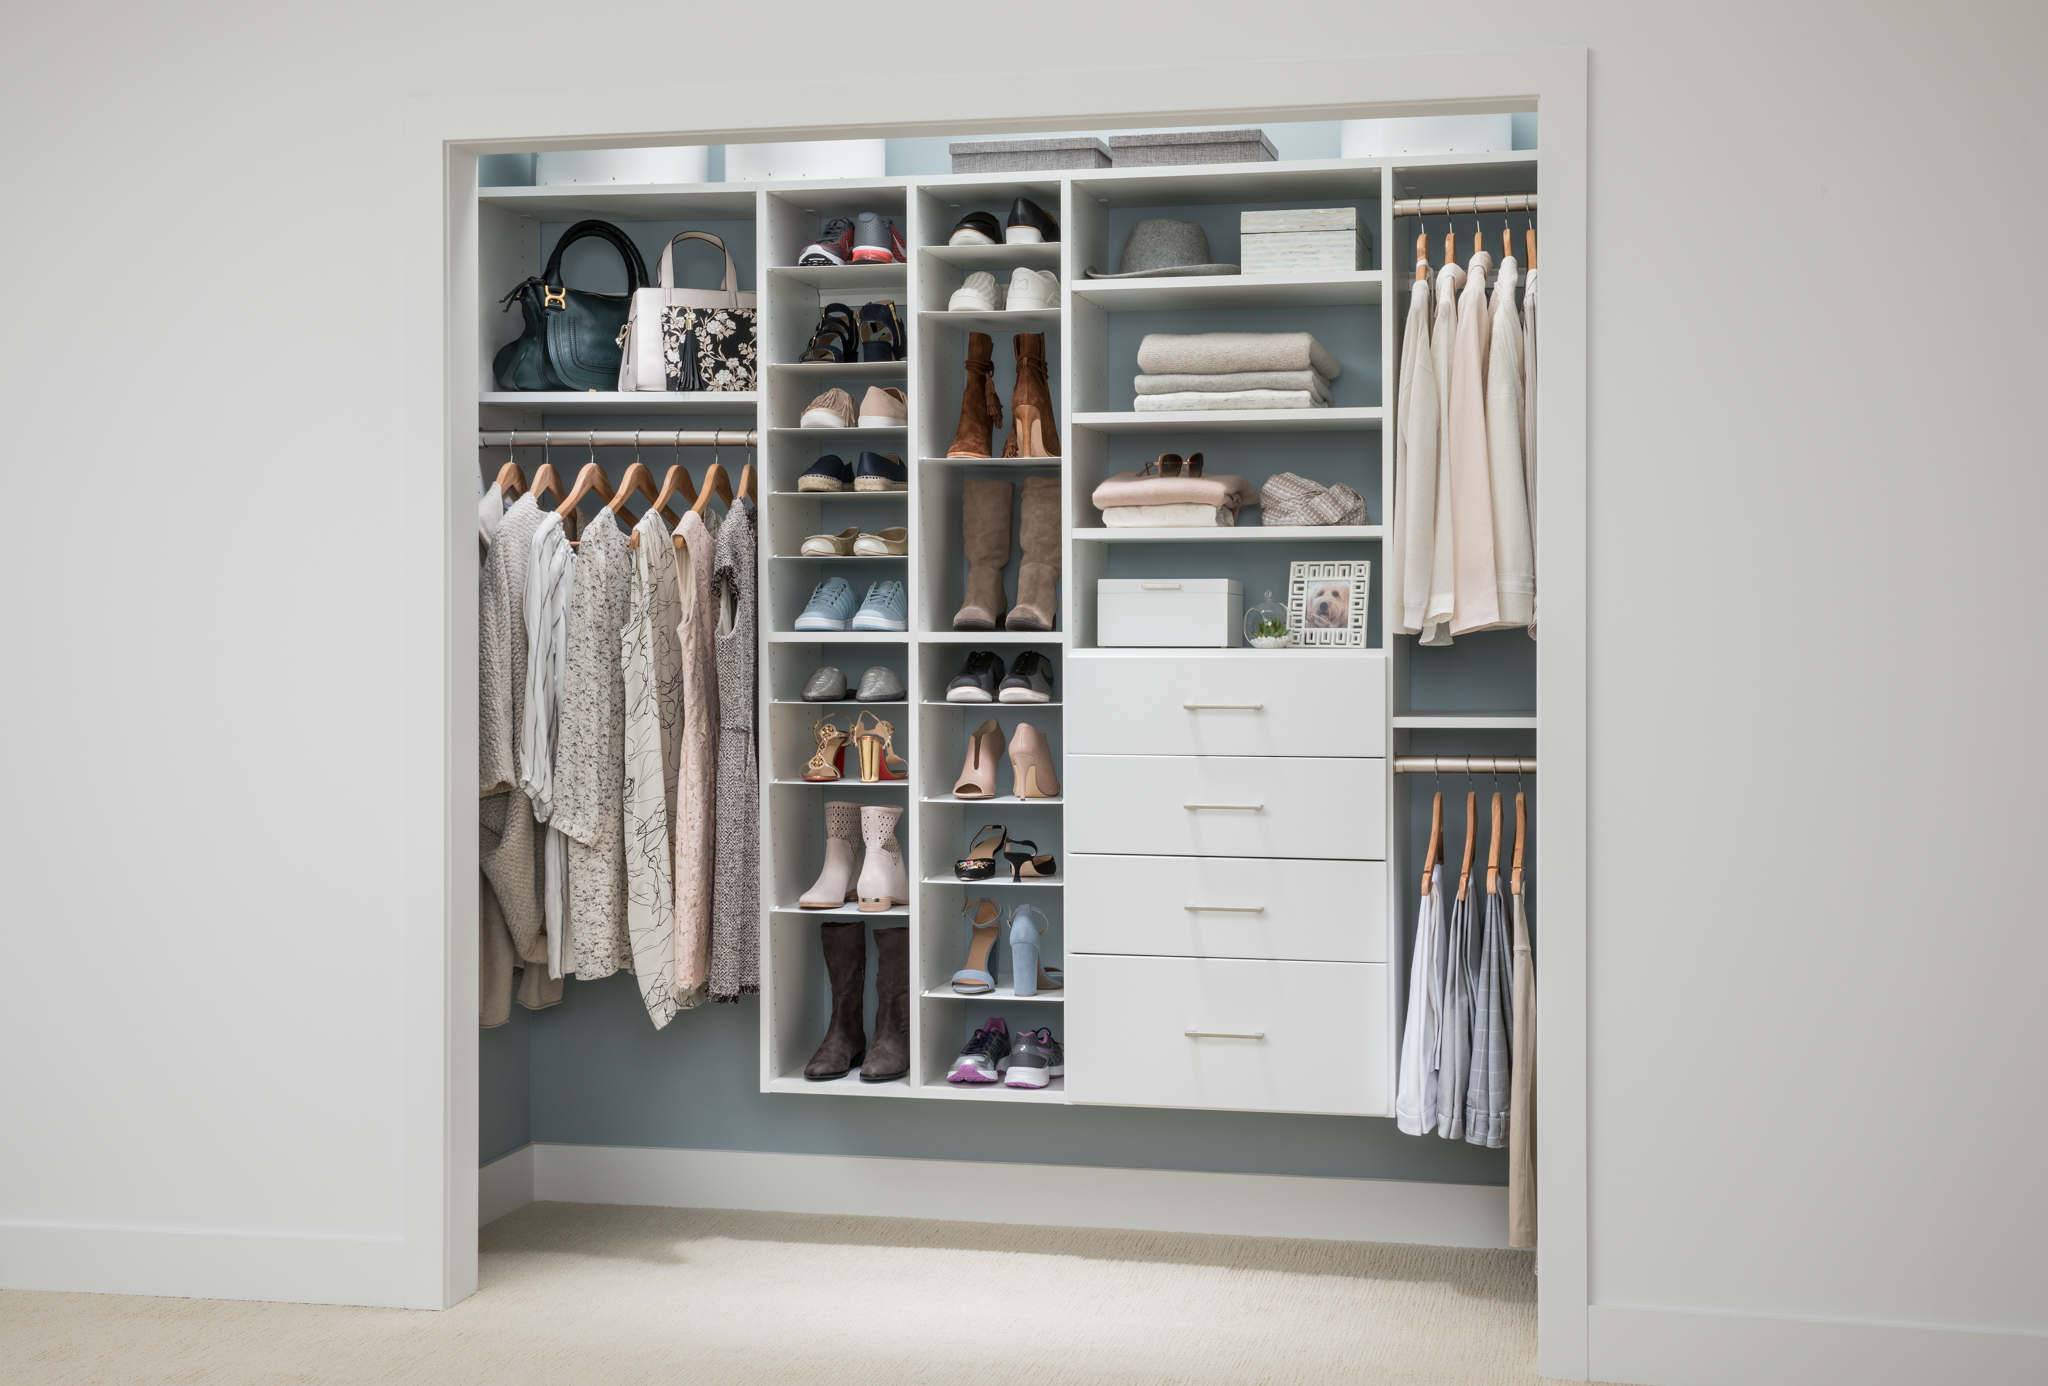 doors hooks bystainless ravishing cloth ga rack racks drawers steel peaceably roselawnluran for wall encouragement closets design free room decent added miraculous with system wooden comfortable diy closet furniture brown shoe laundry